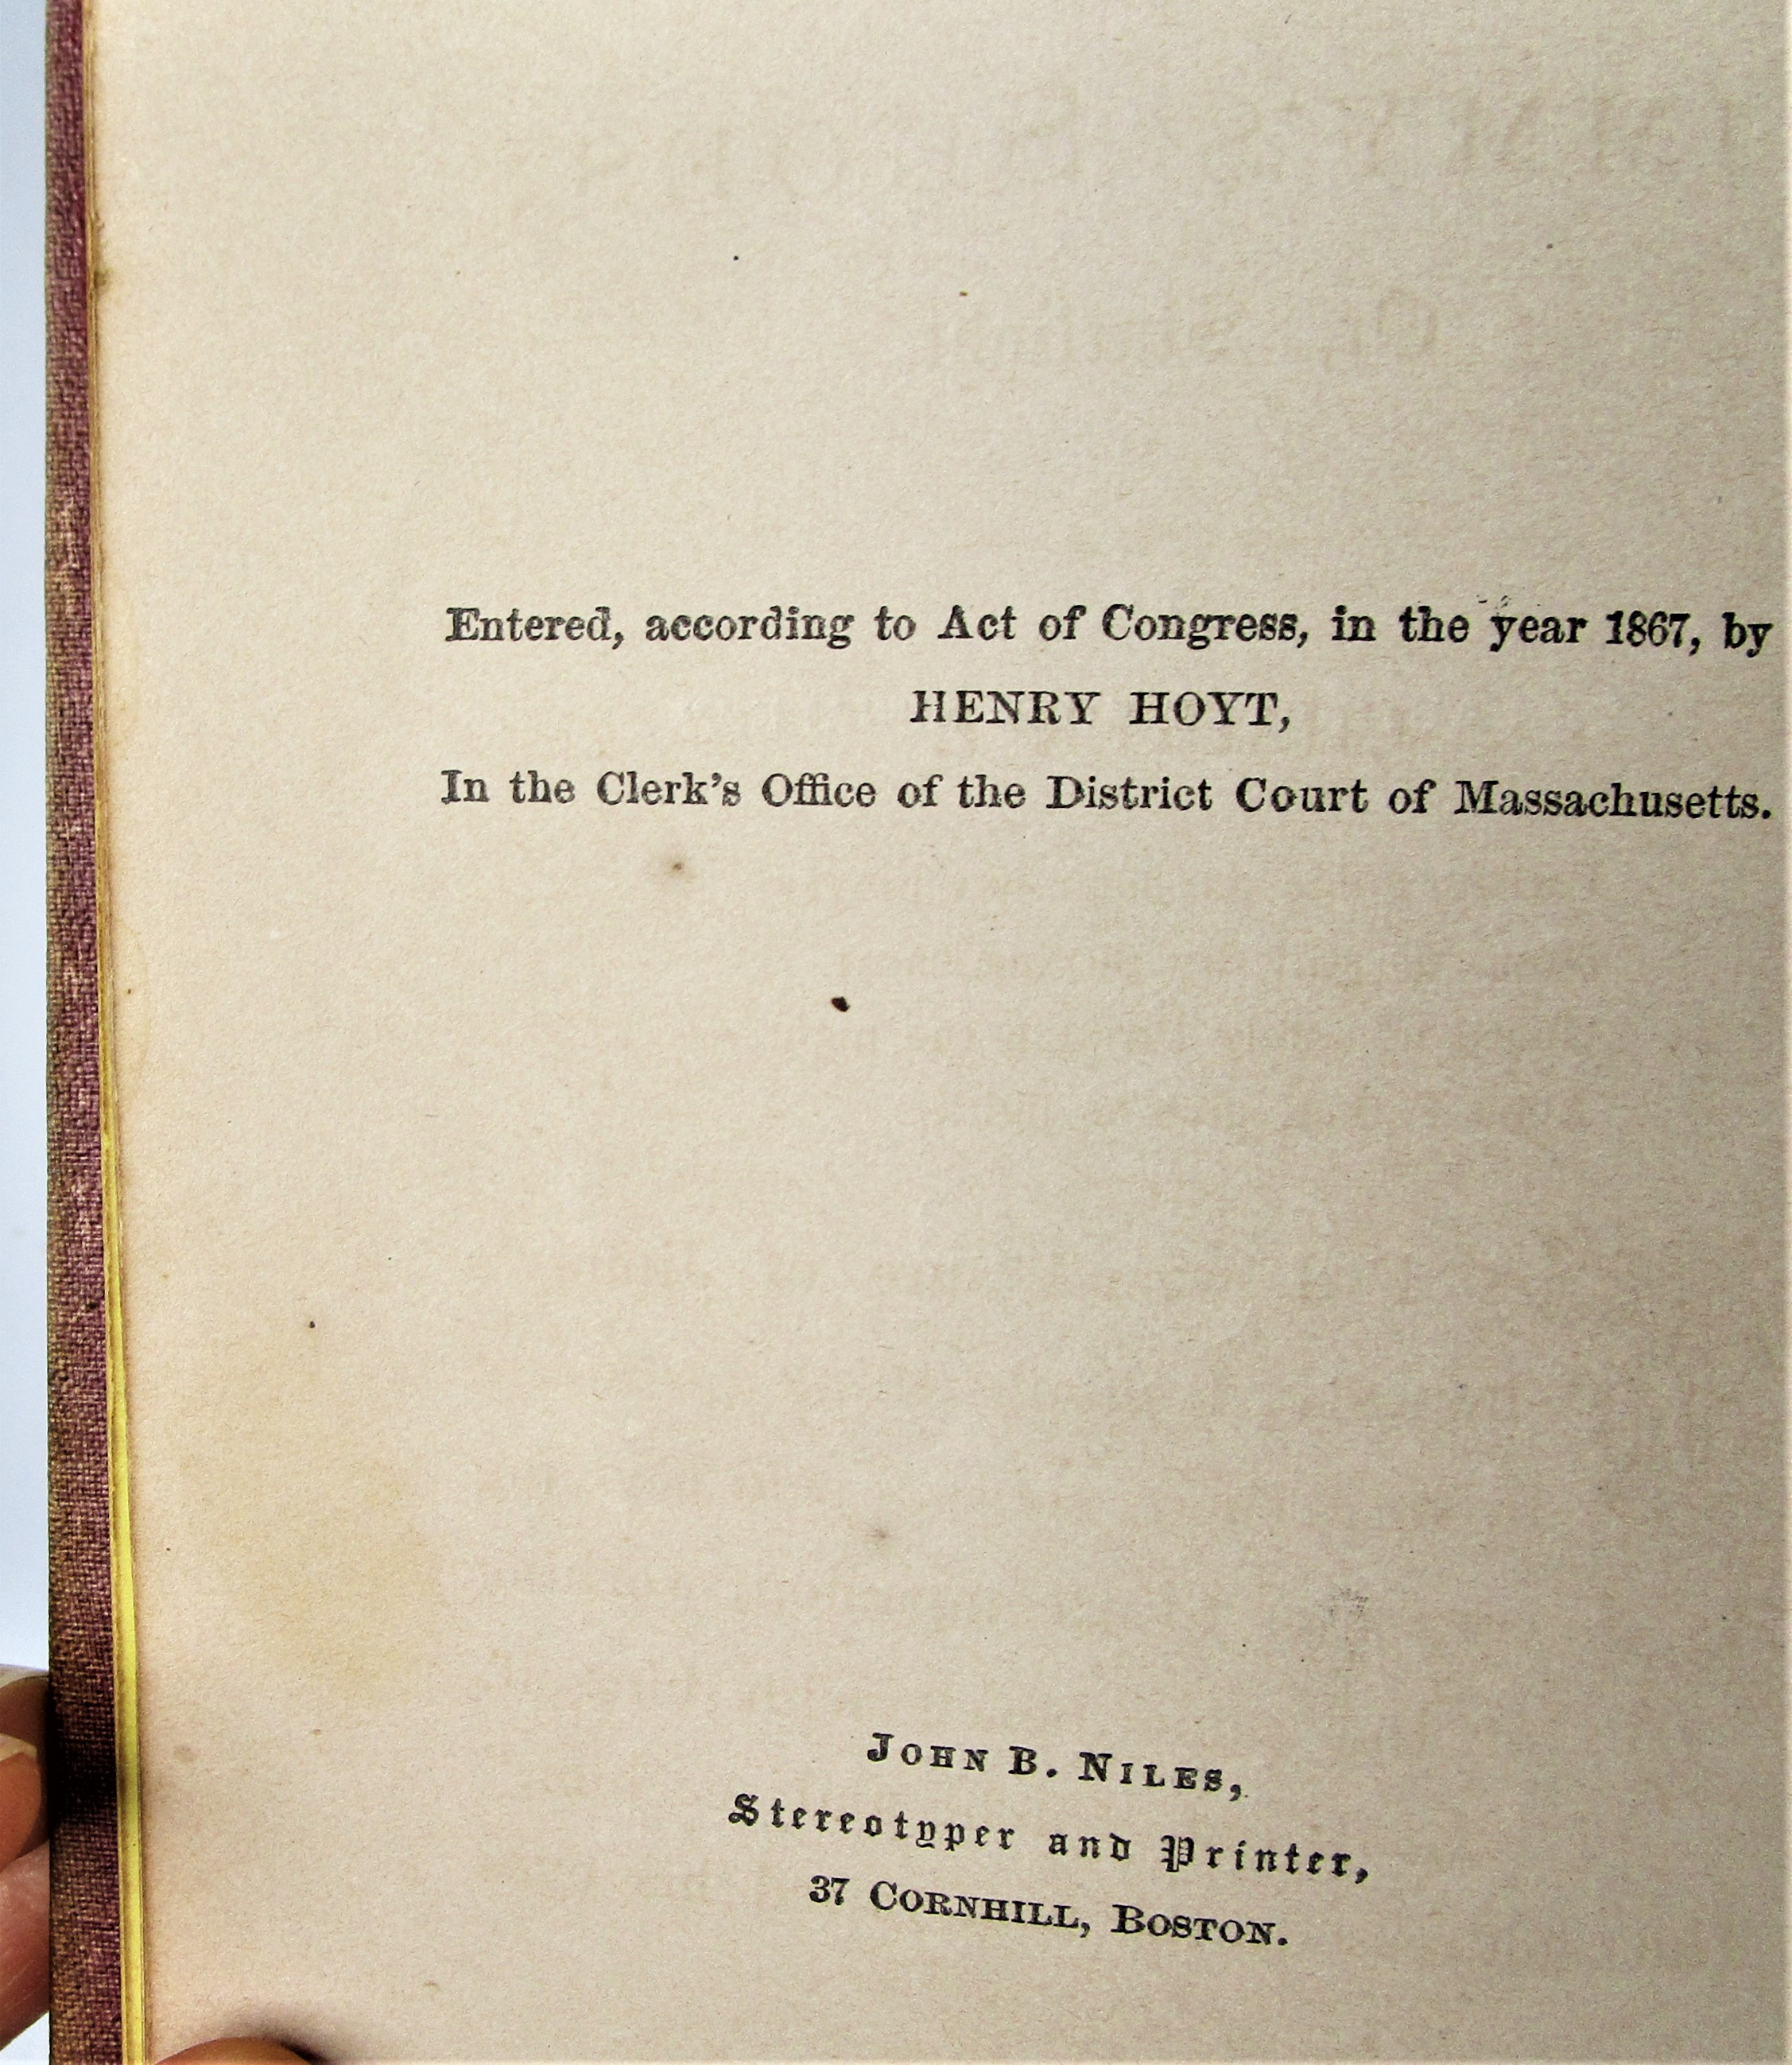 JIMMY'S SHOES: OR, STARLIGHT, by Mary Dwinell Chellis - 1867